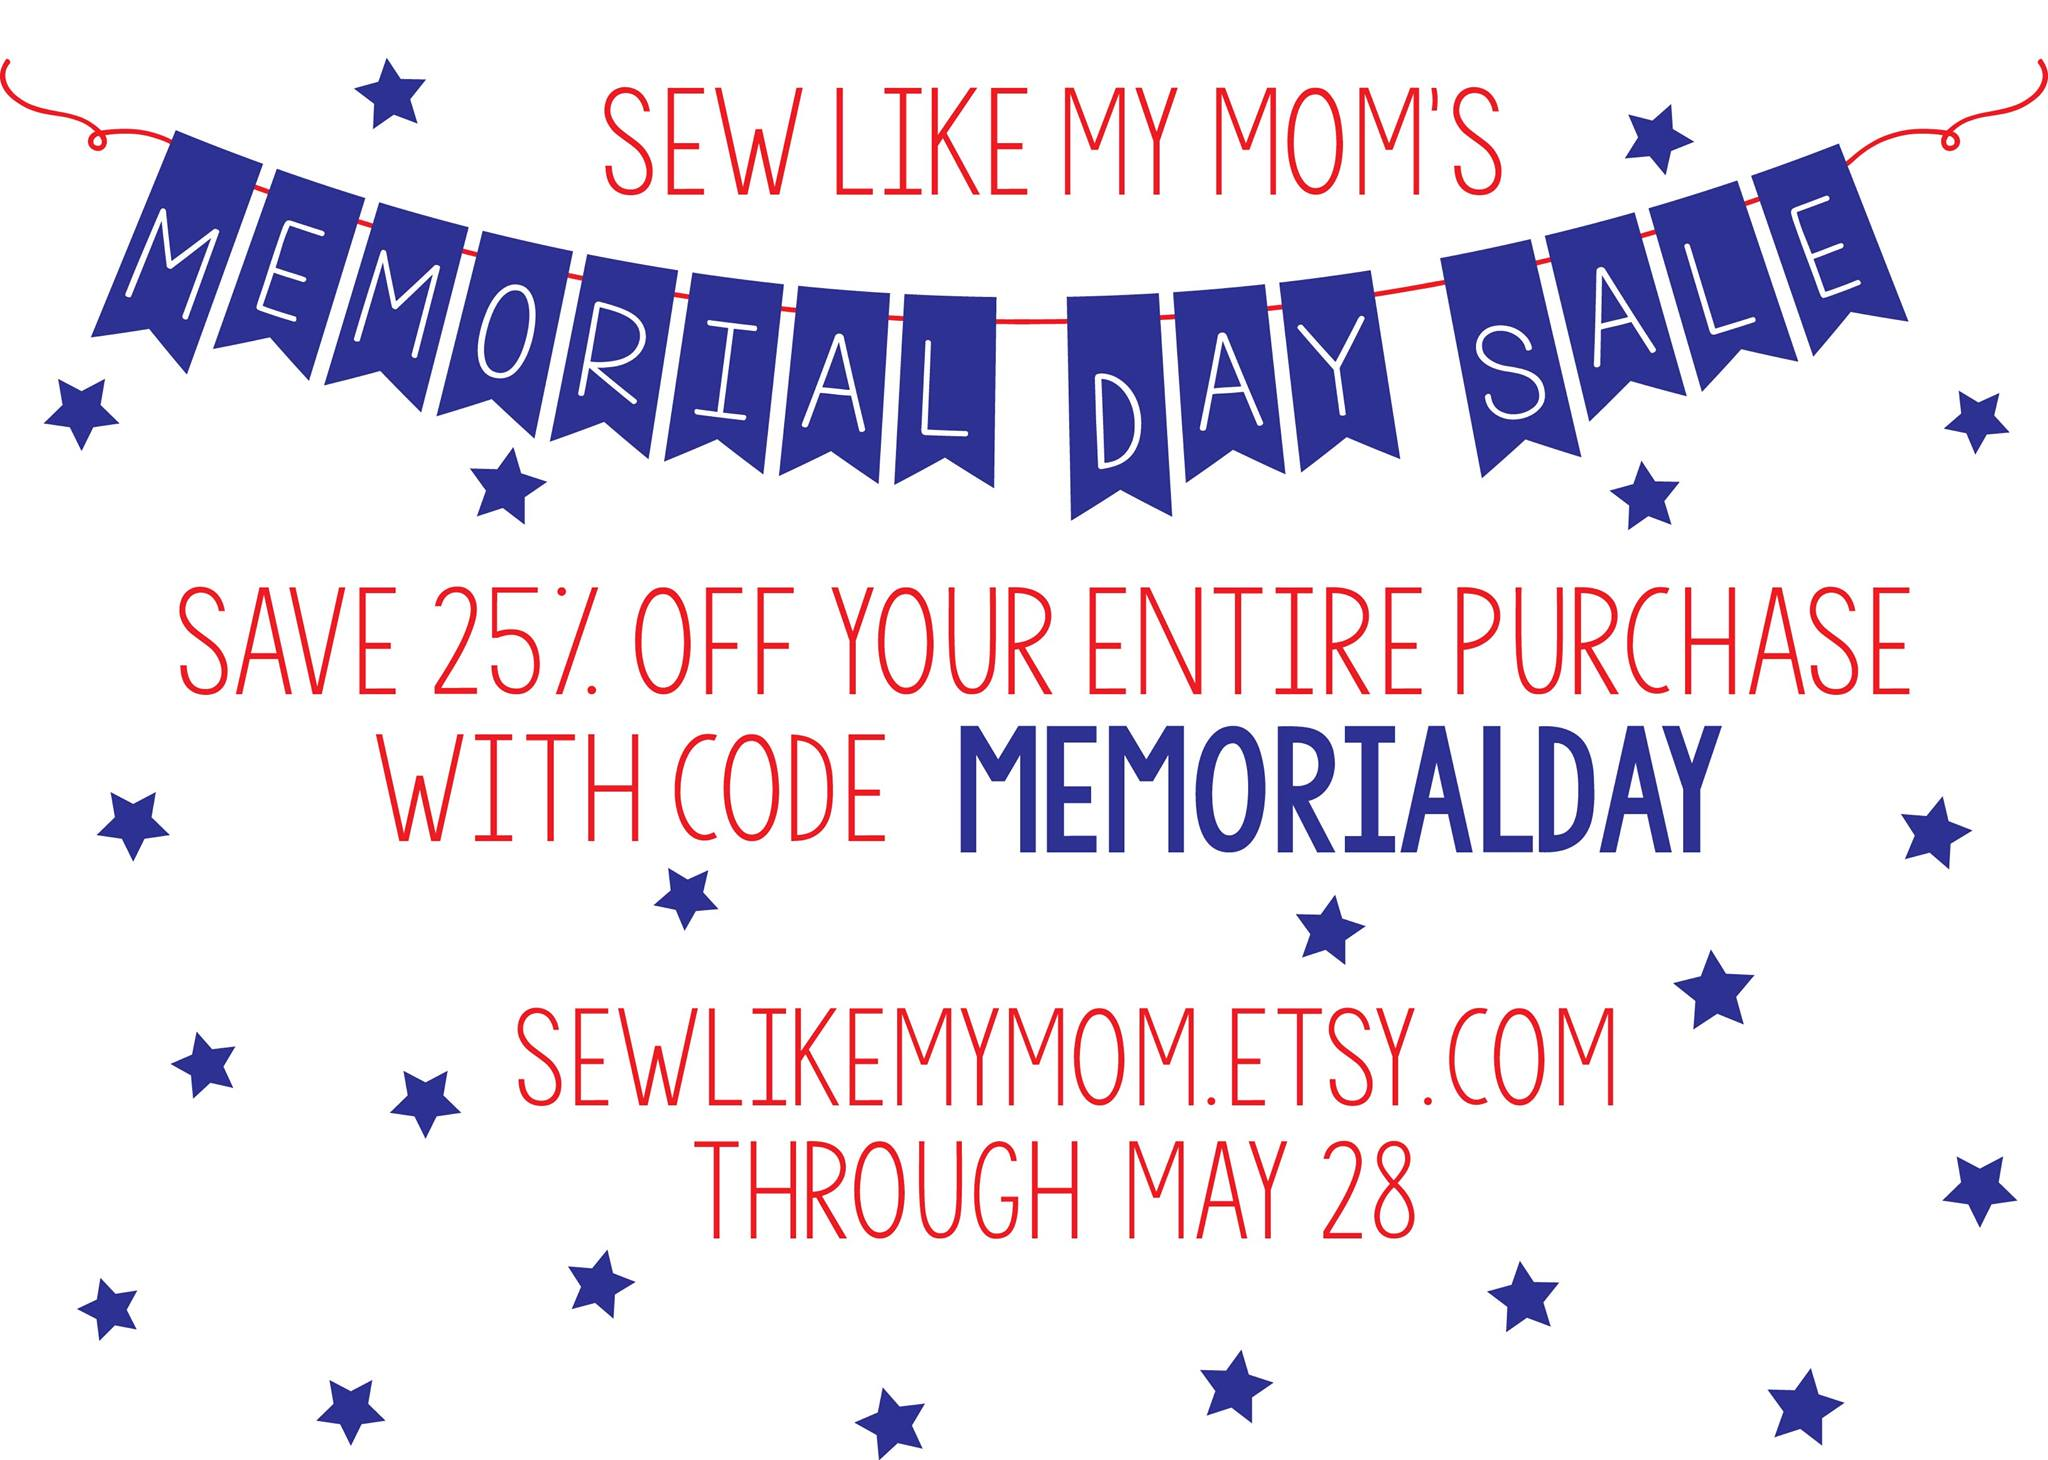 Sew Like My Mom Sewing Patterns Memorial Day Sale